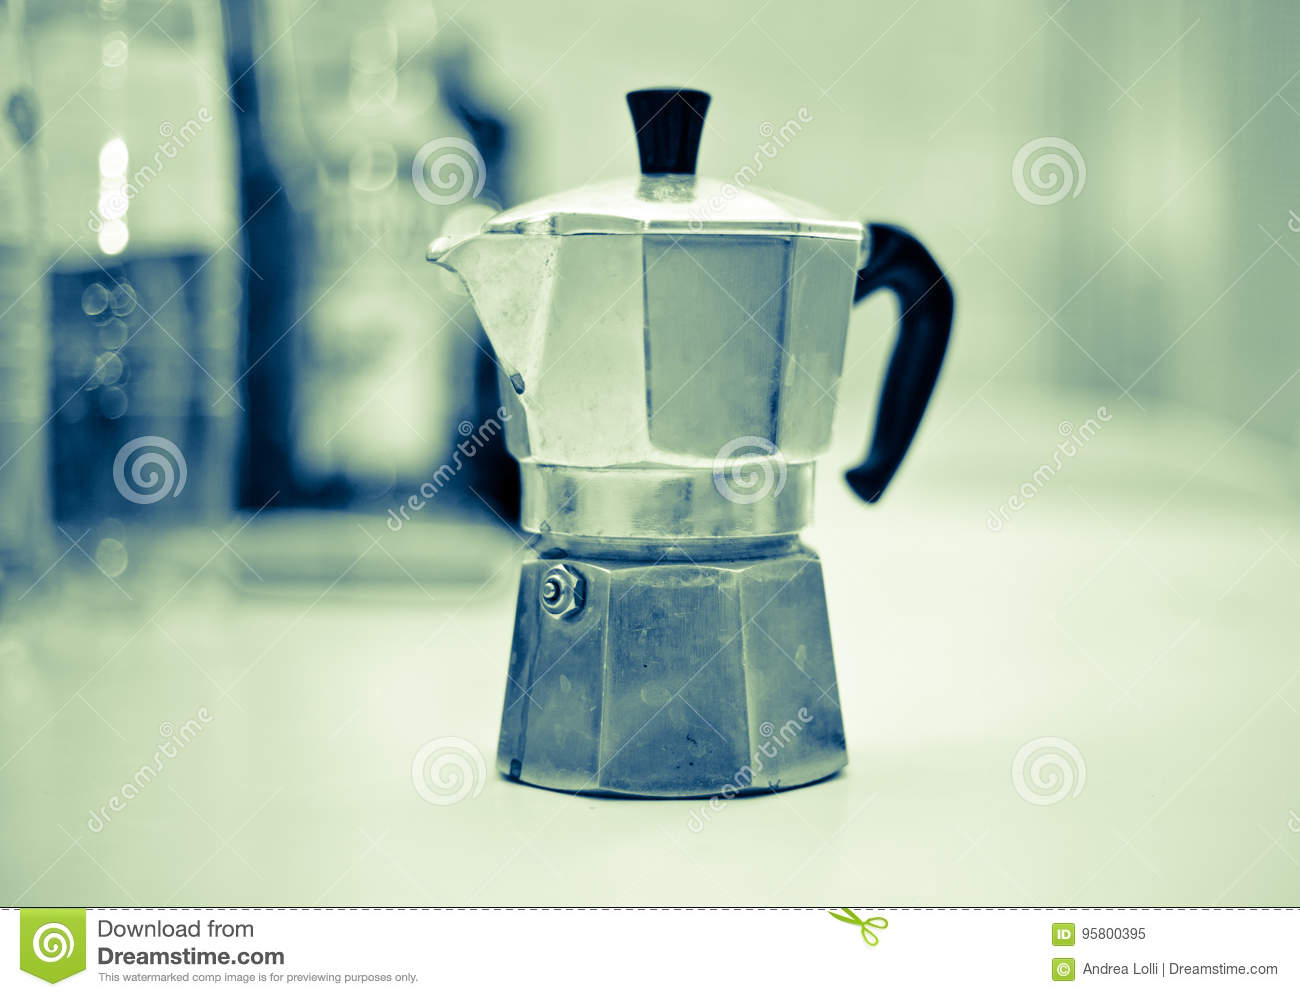 Coffee Break with italian moka good morning energy caffeine black coffee